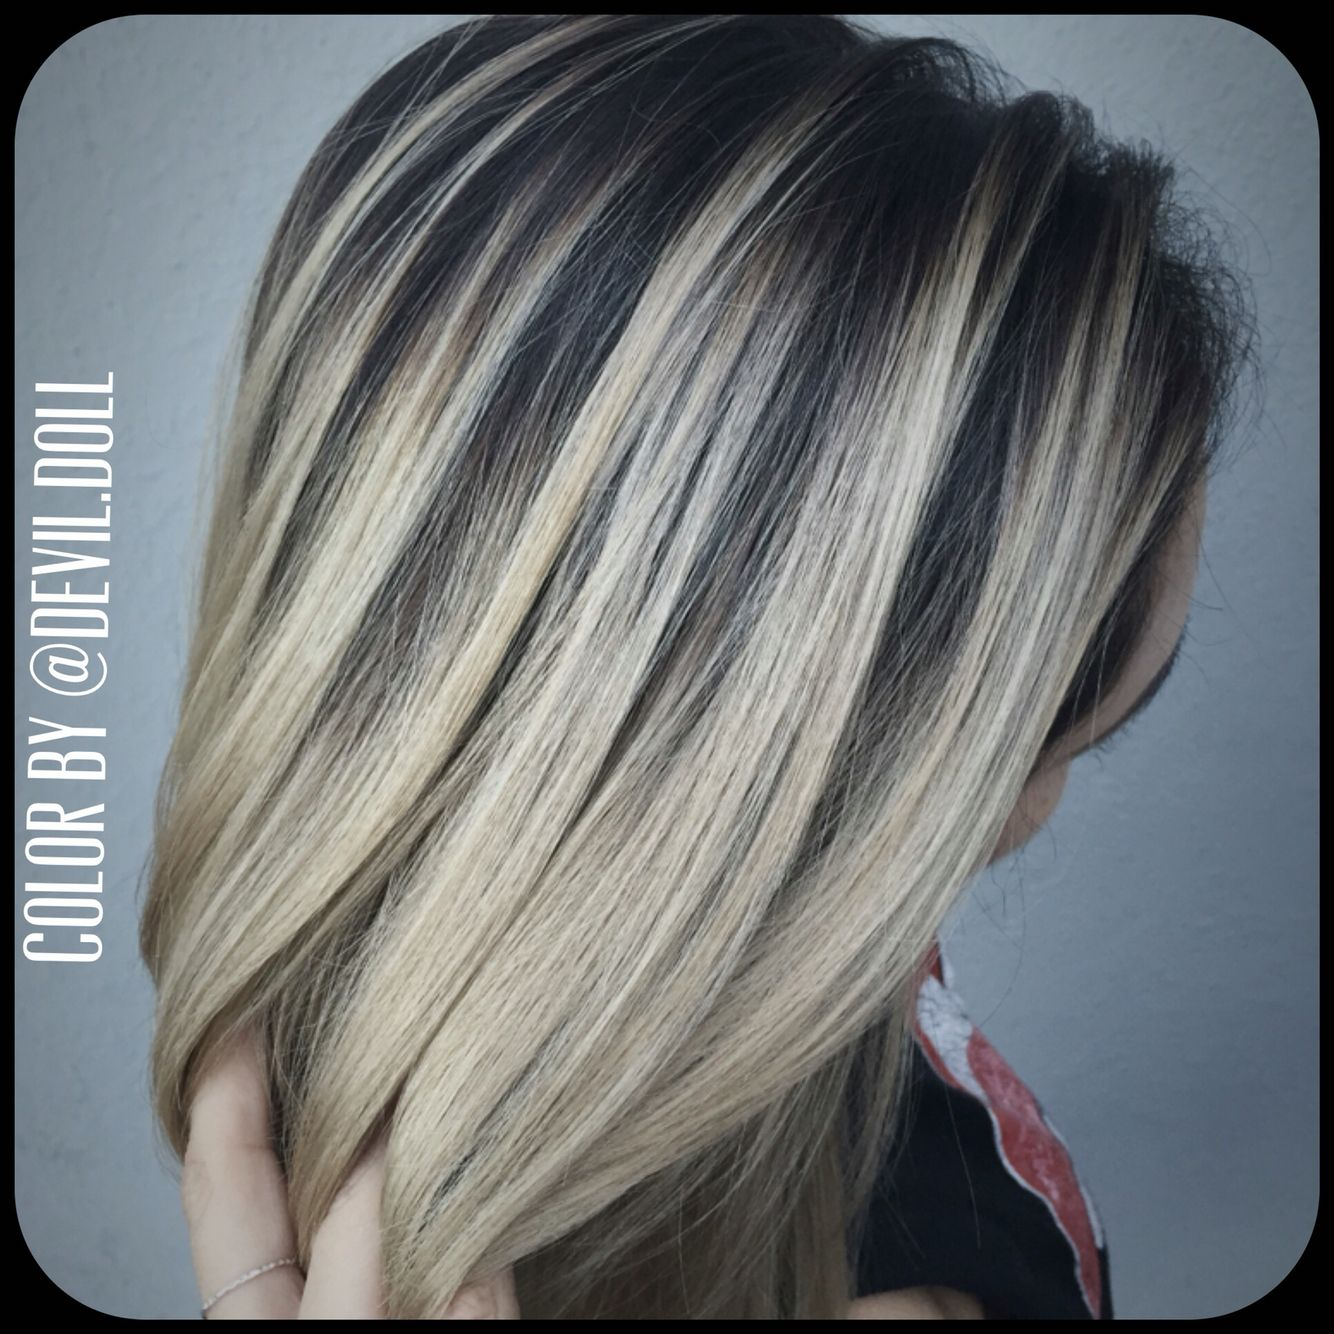 Blonde With Stretched Root Hair Painting My Work Hair Colour In